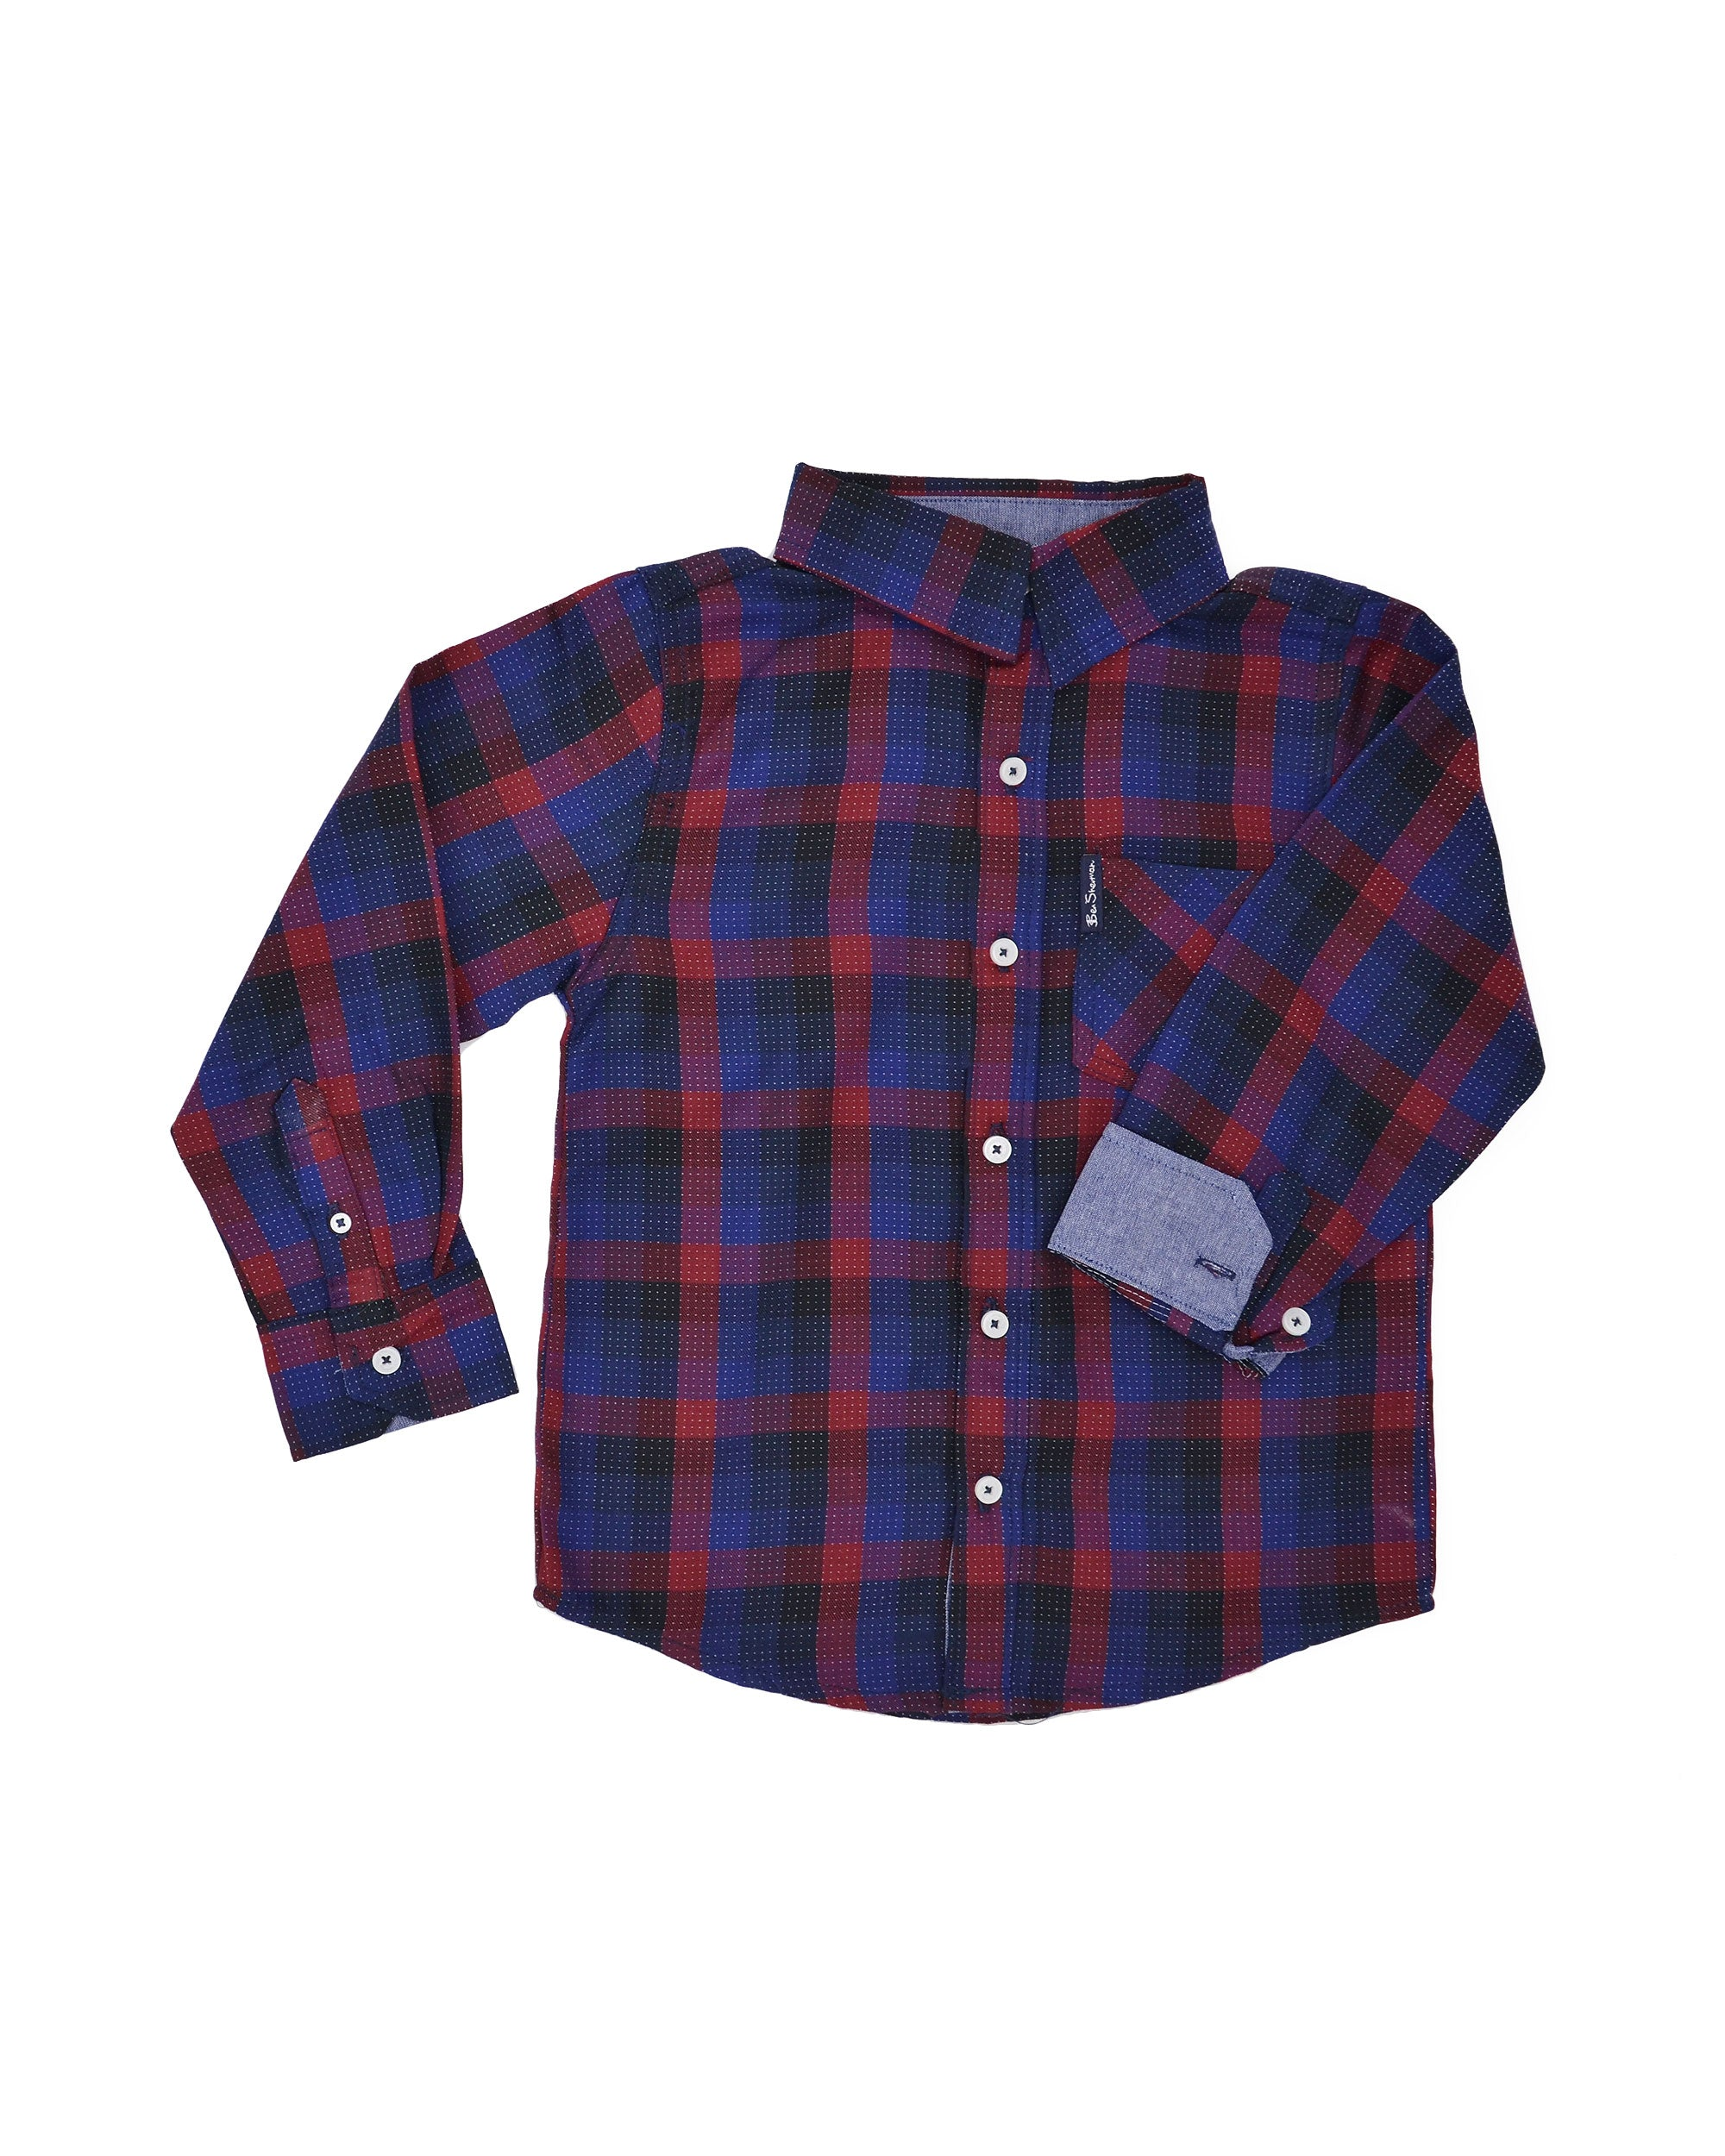 Boys' Black/Blue/Red Plaid Button-Down Shirt (Sizes 8-18)